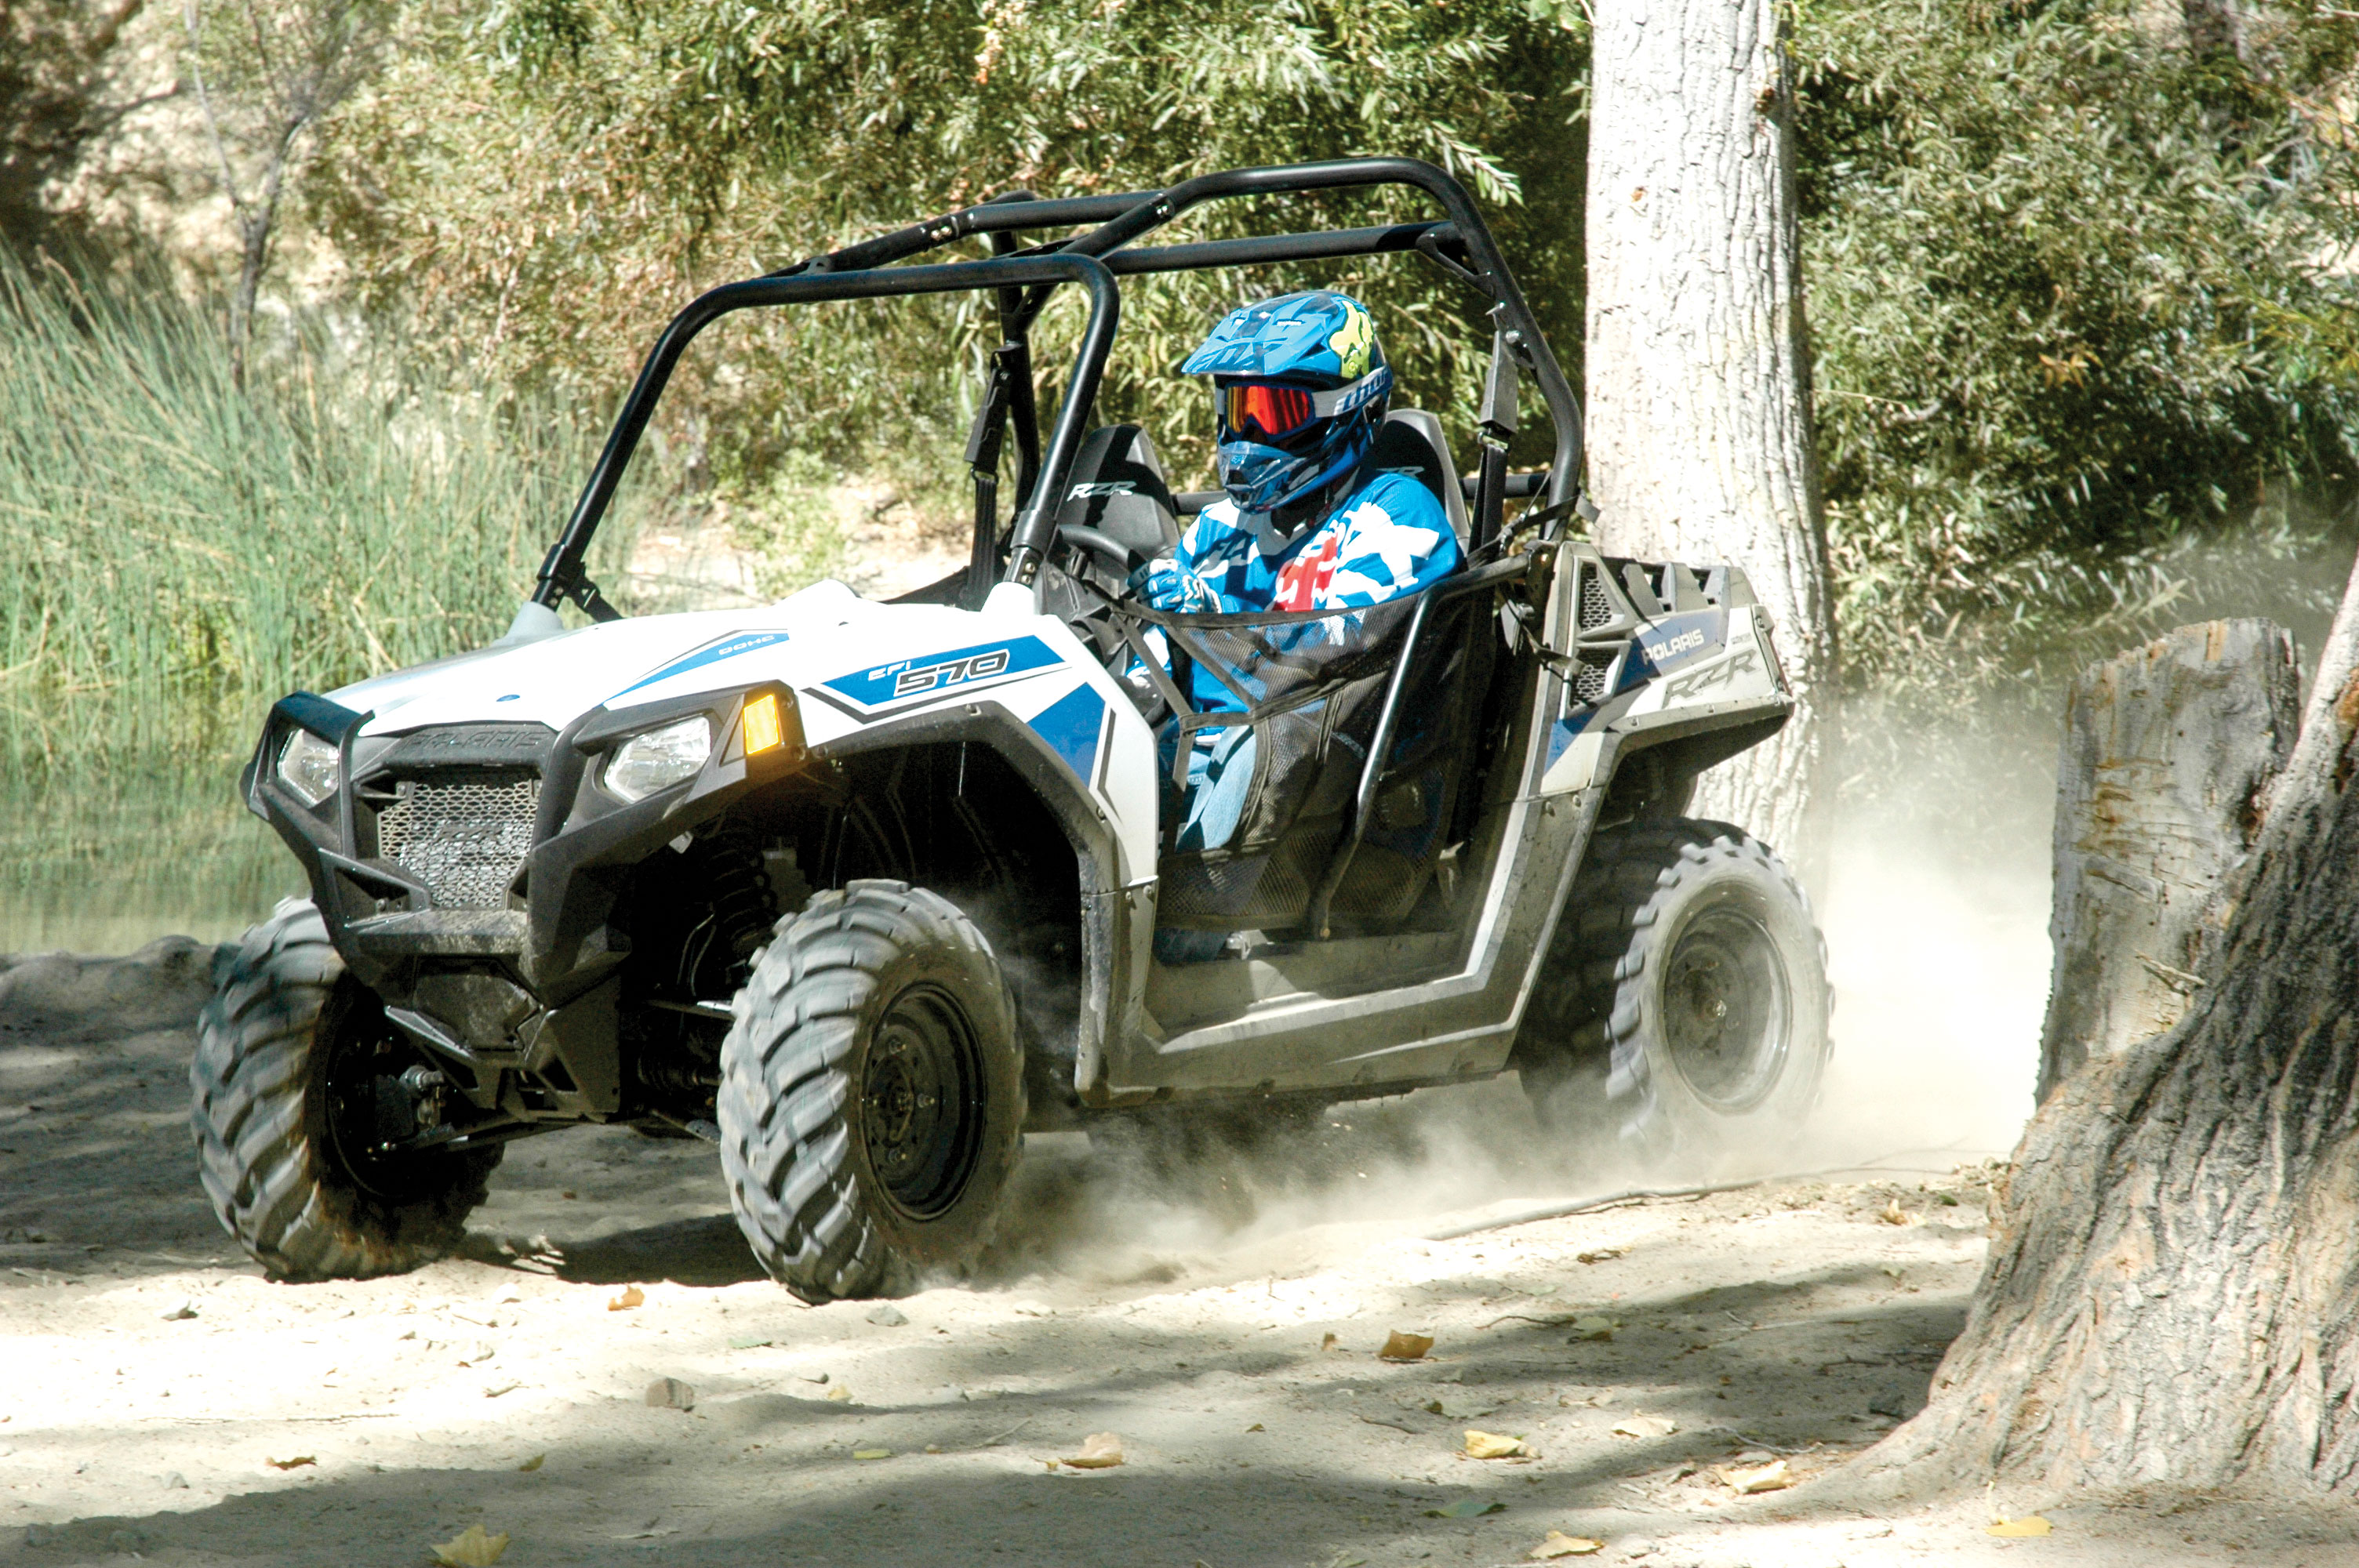 TEST: POLARIS RZR 570 – UTV Action Magazine